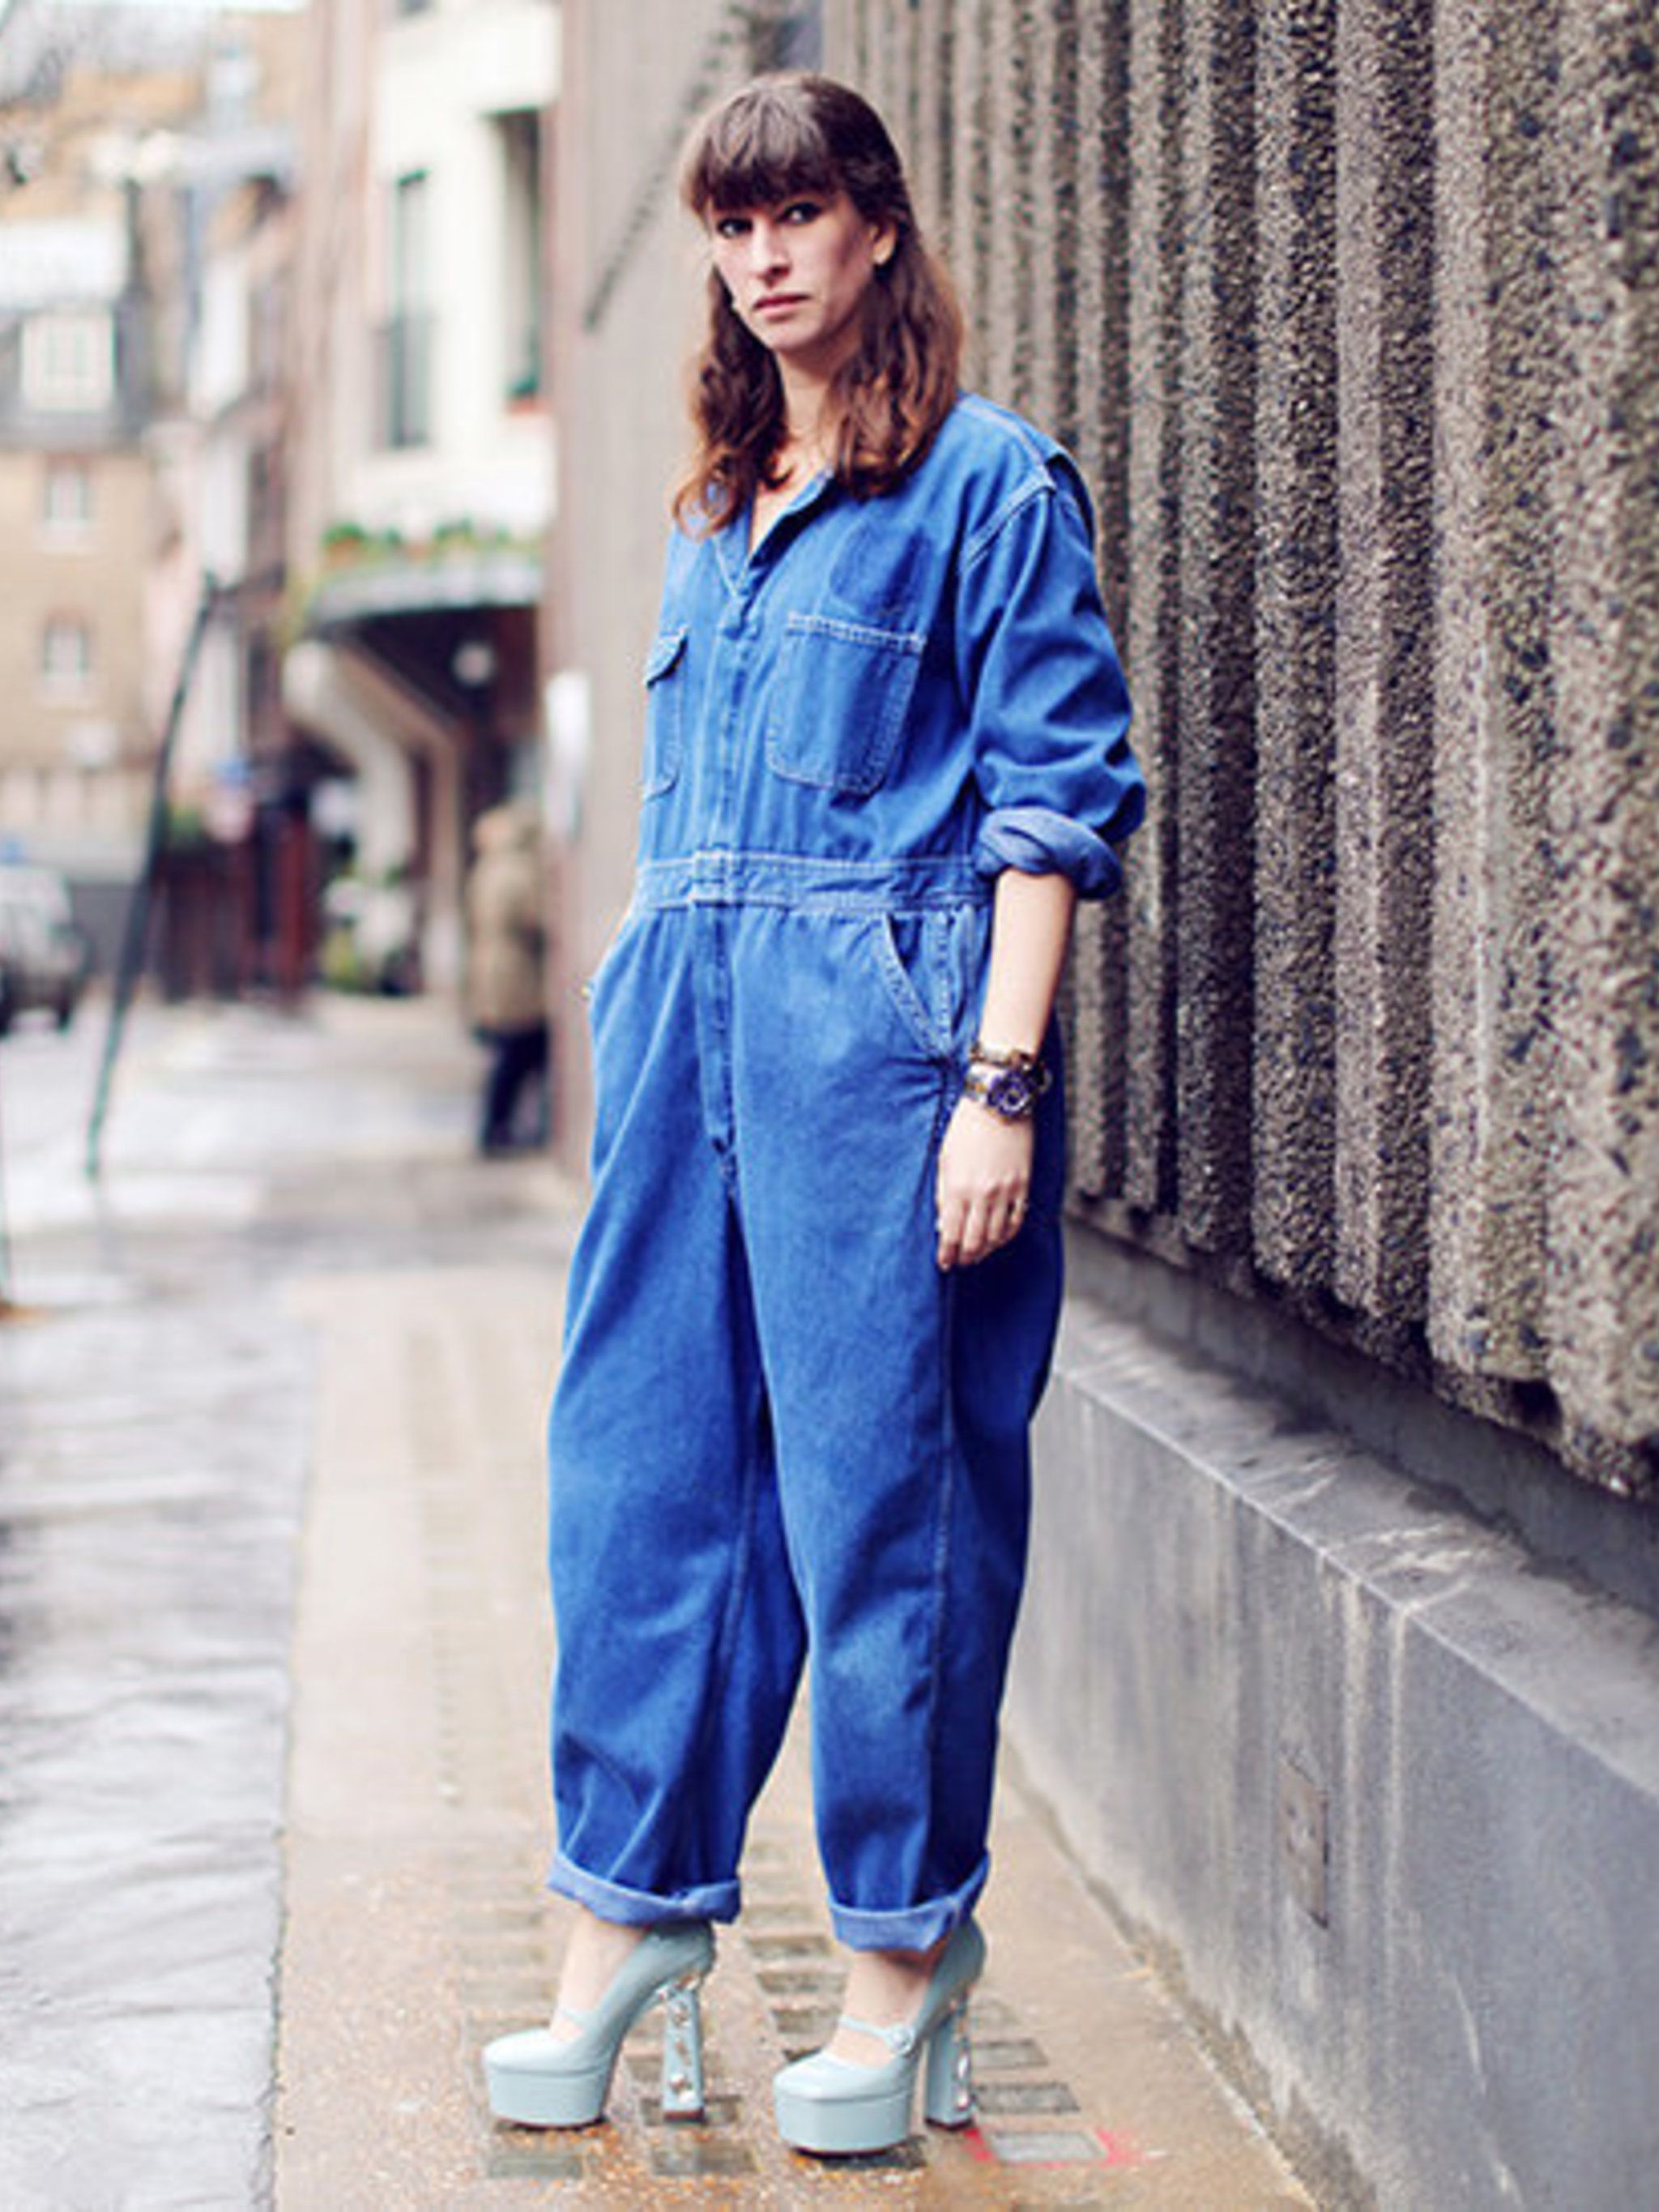 "<p>Lara Ferros - Picture Editor</p><p><a href=""http://www.rokit.co.uk/vintage-womens/-clothing/playsuits-and-jumpsuits-and-onesies"">Rokit jumpsuit</a>, Miu Miu shoes.</p>"